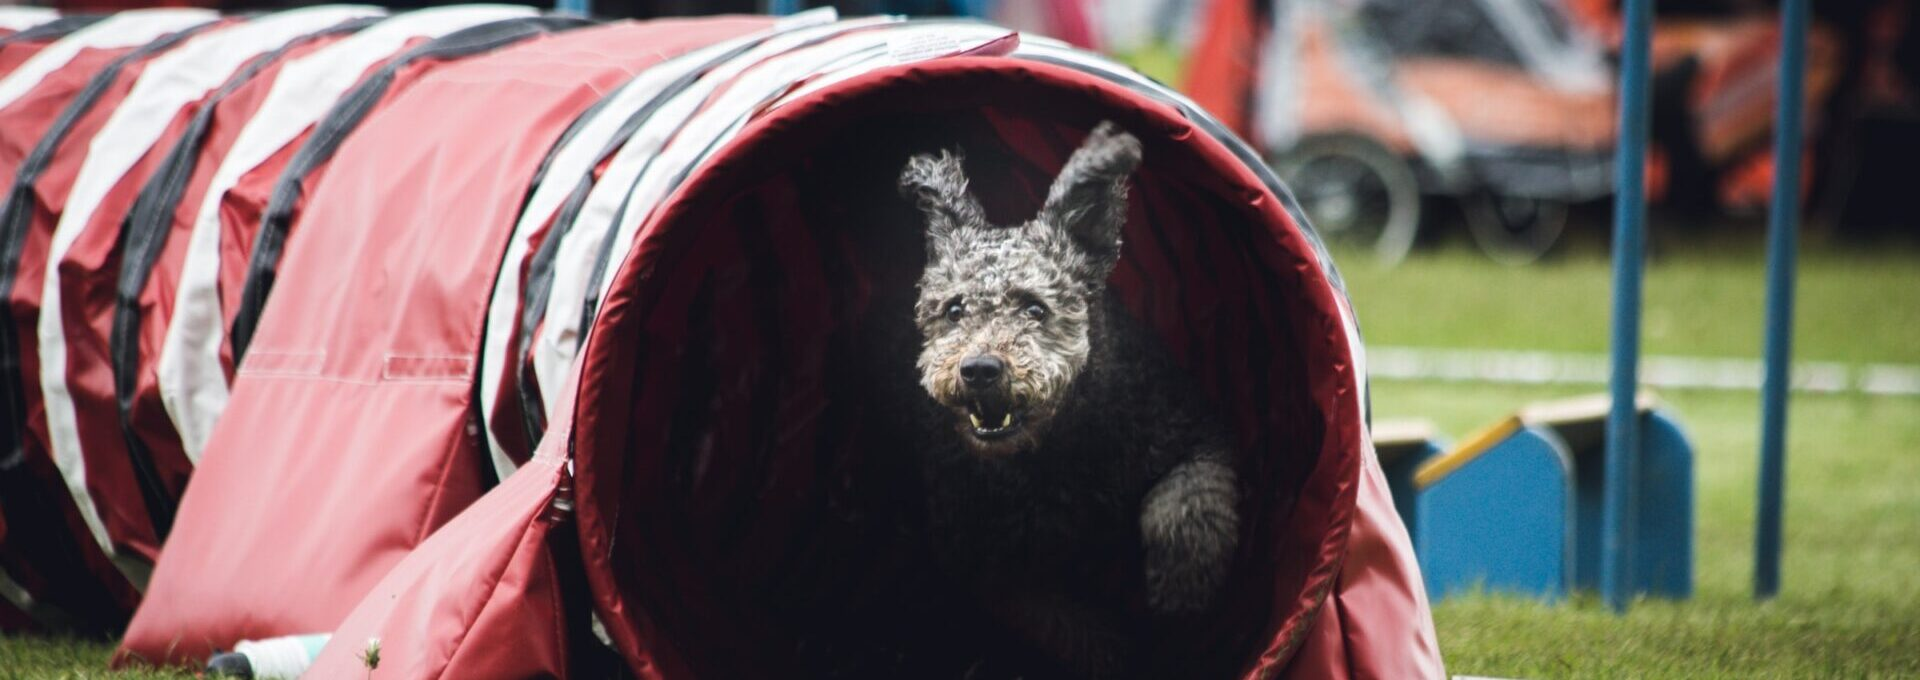 Dog in agility course tunnel